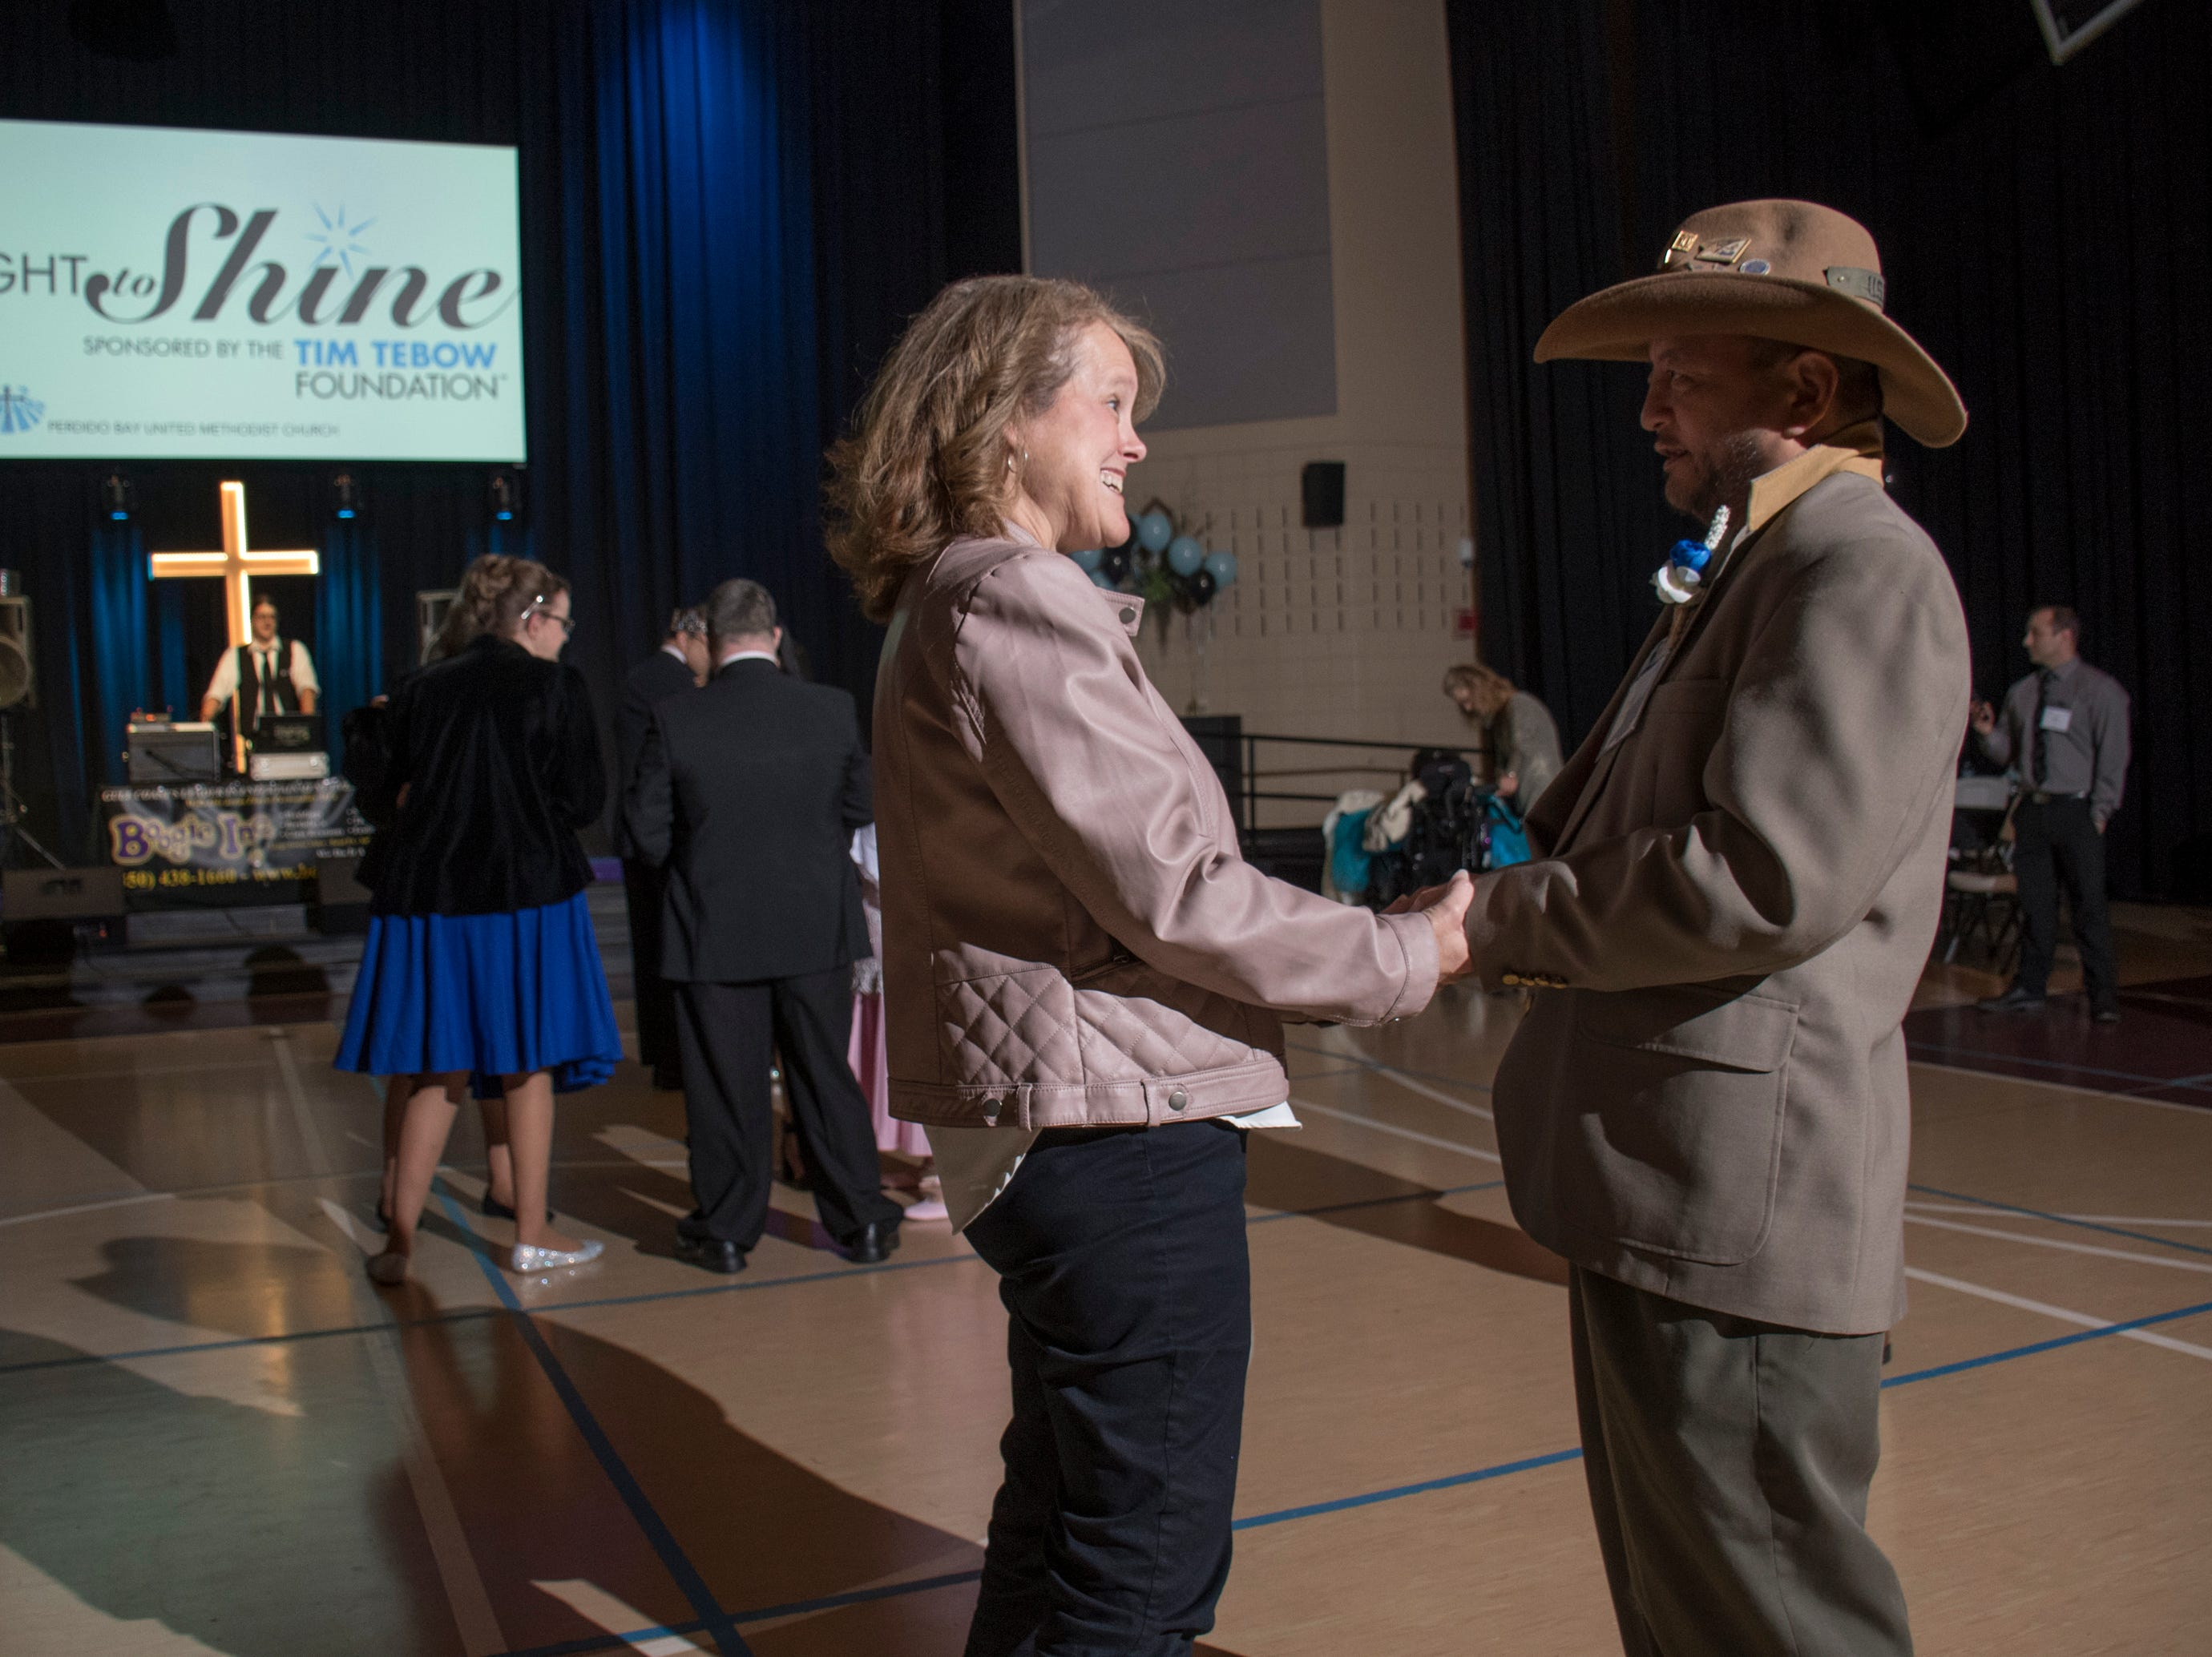 Sherri dances with Jody Fejeran during the Night to Shine prom for people with special needs sponsored by the Tim Tebow Foundation at Perdido Bay United Methodist Church in Pensacola on Friday, February 8, 2019.